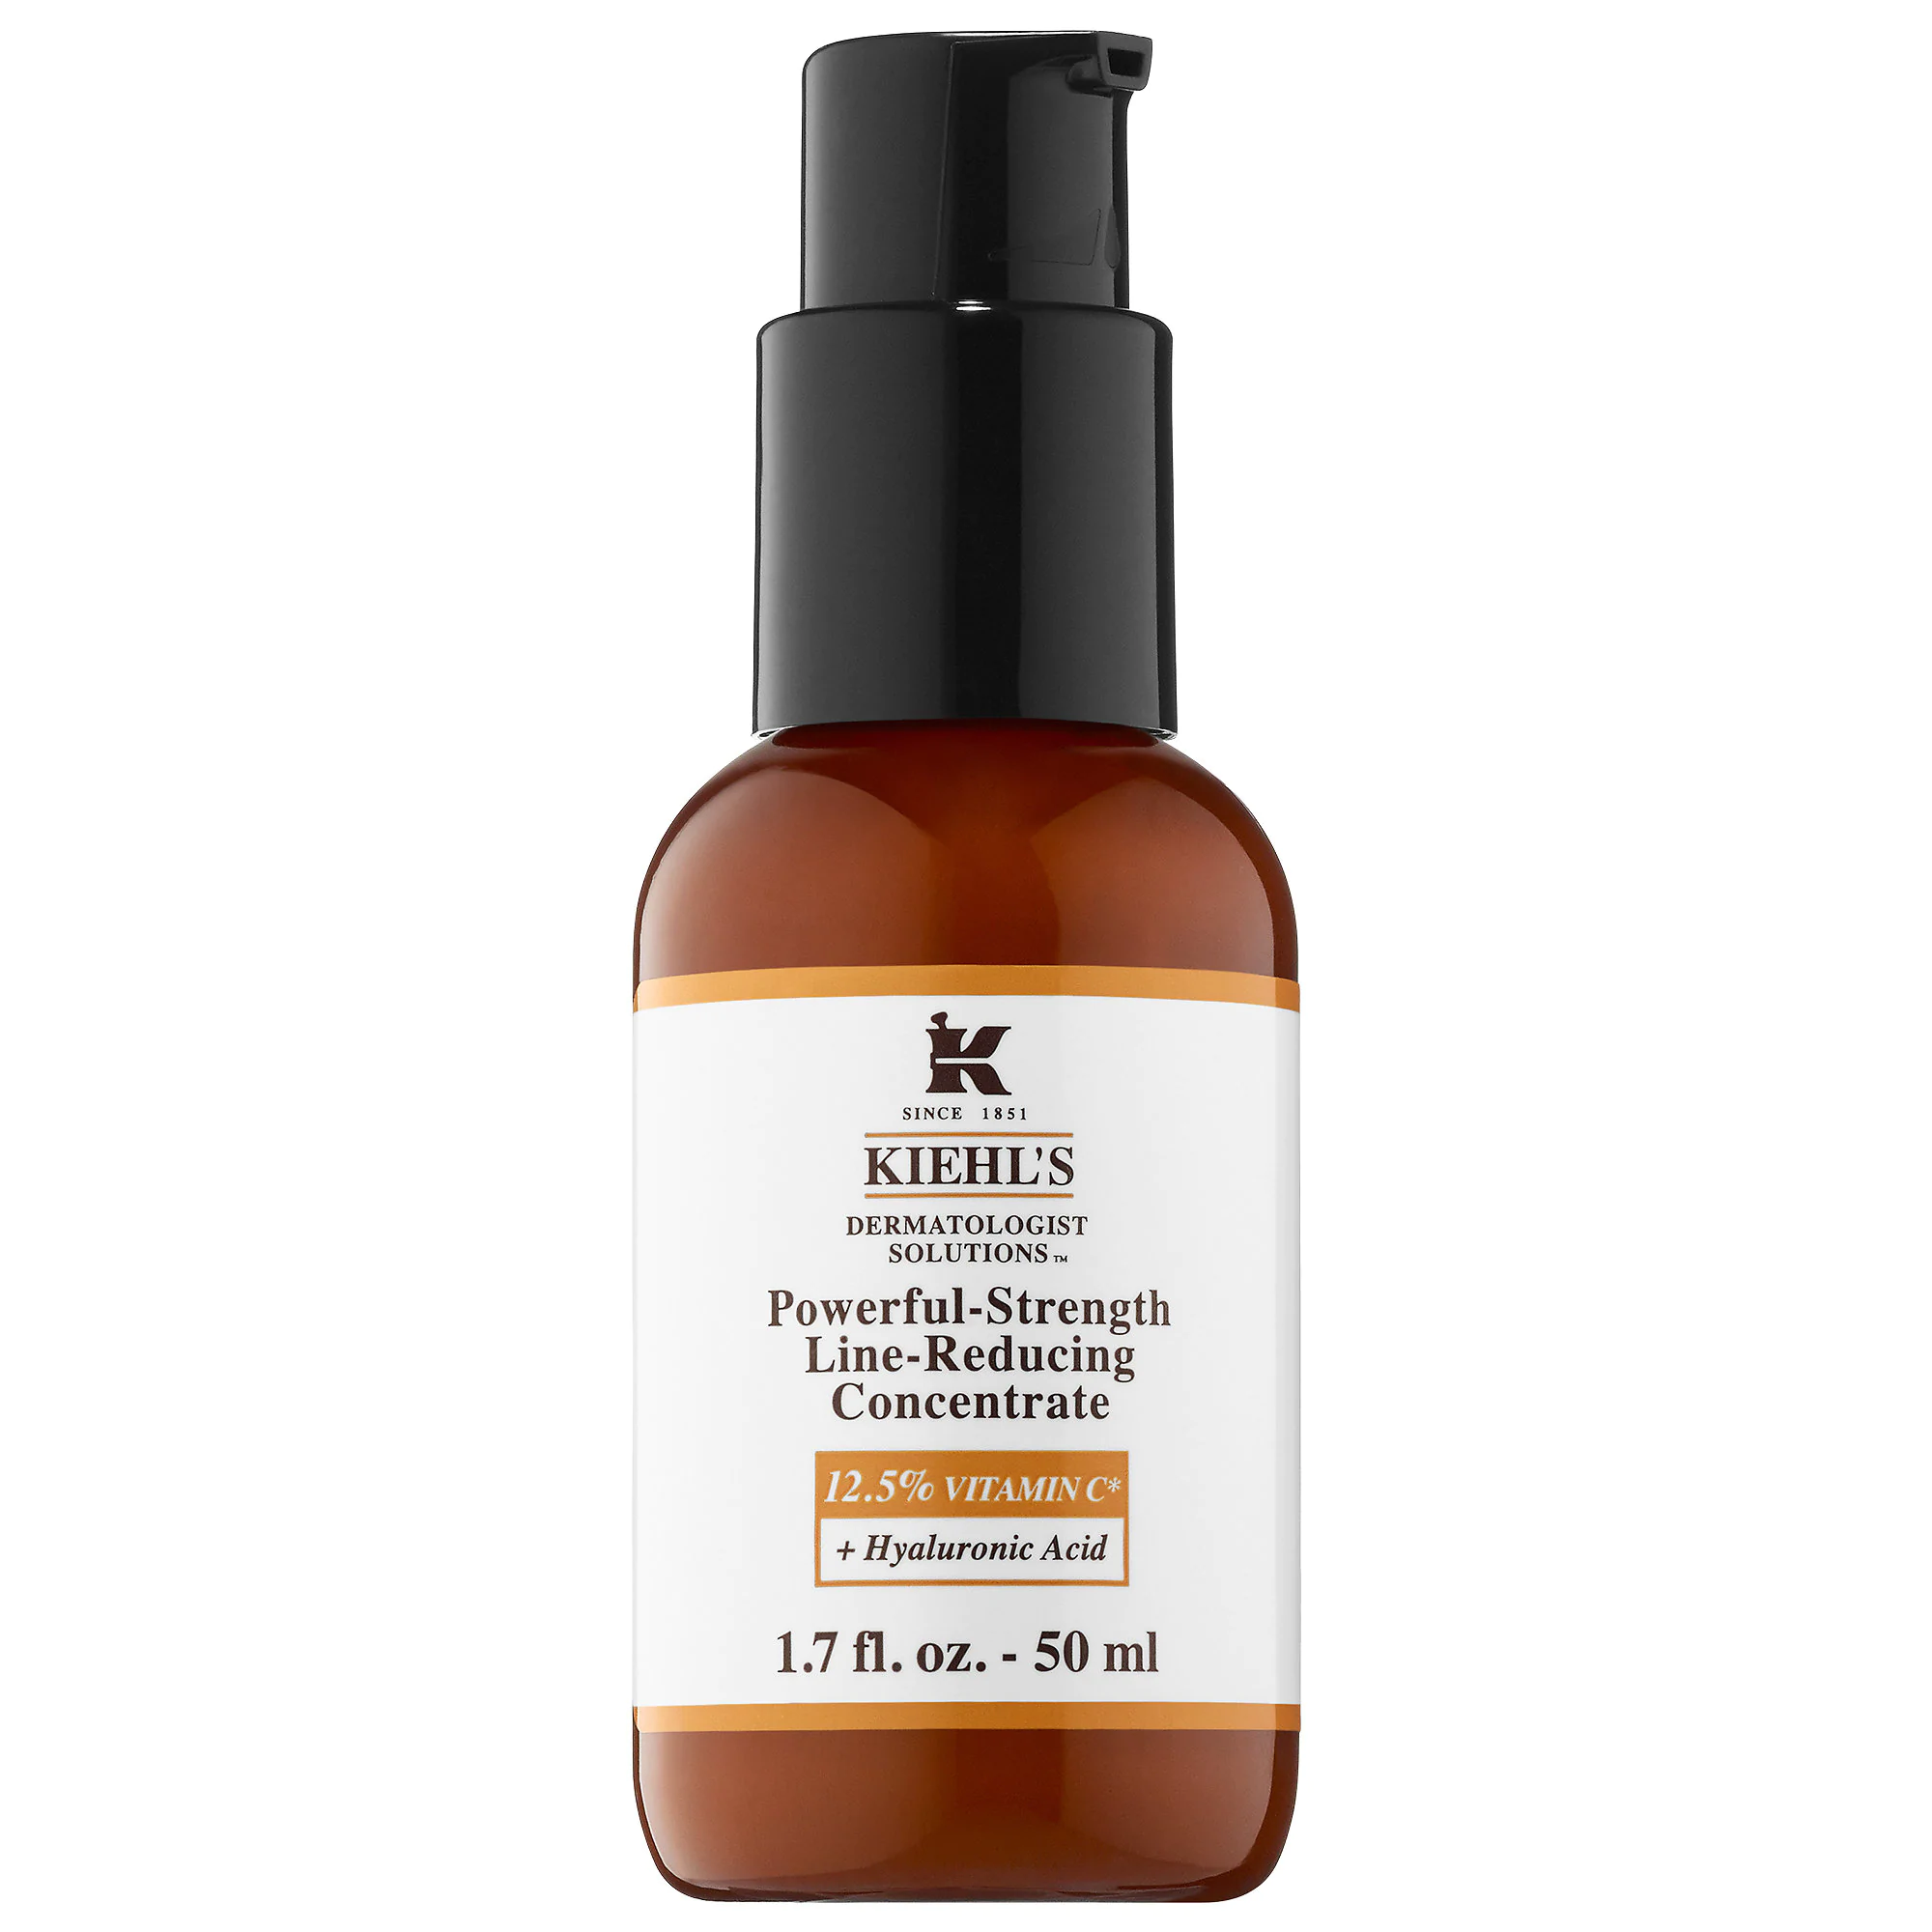 Kiehl's Since 1851-Powerful-Strength Line-Reducing Concentrate 12.5% Vitamin C